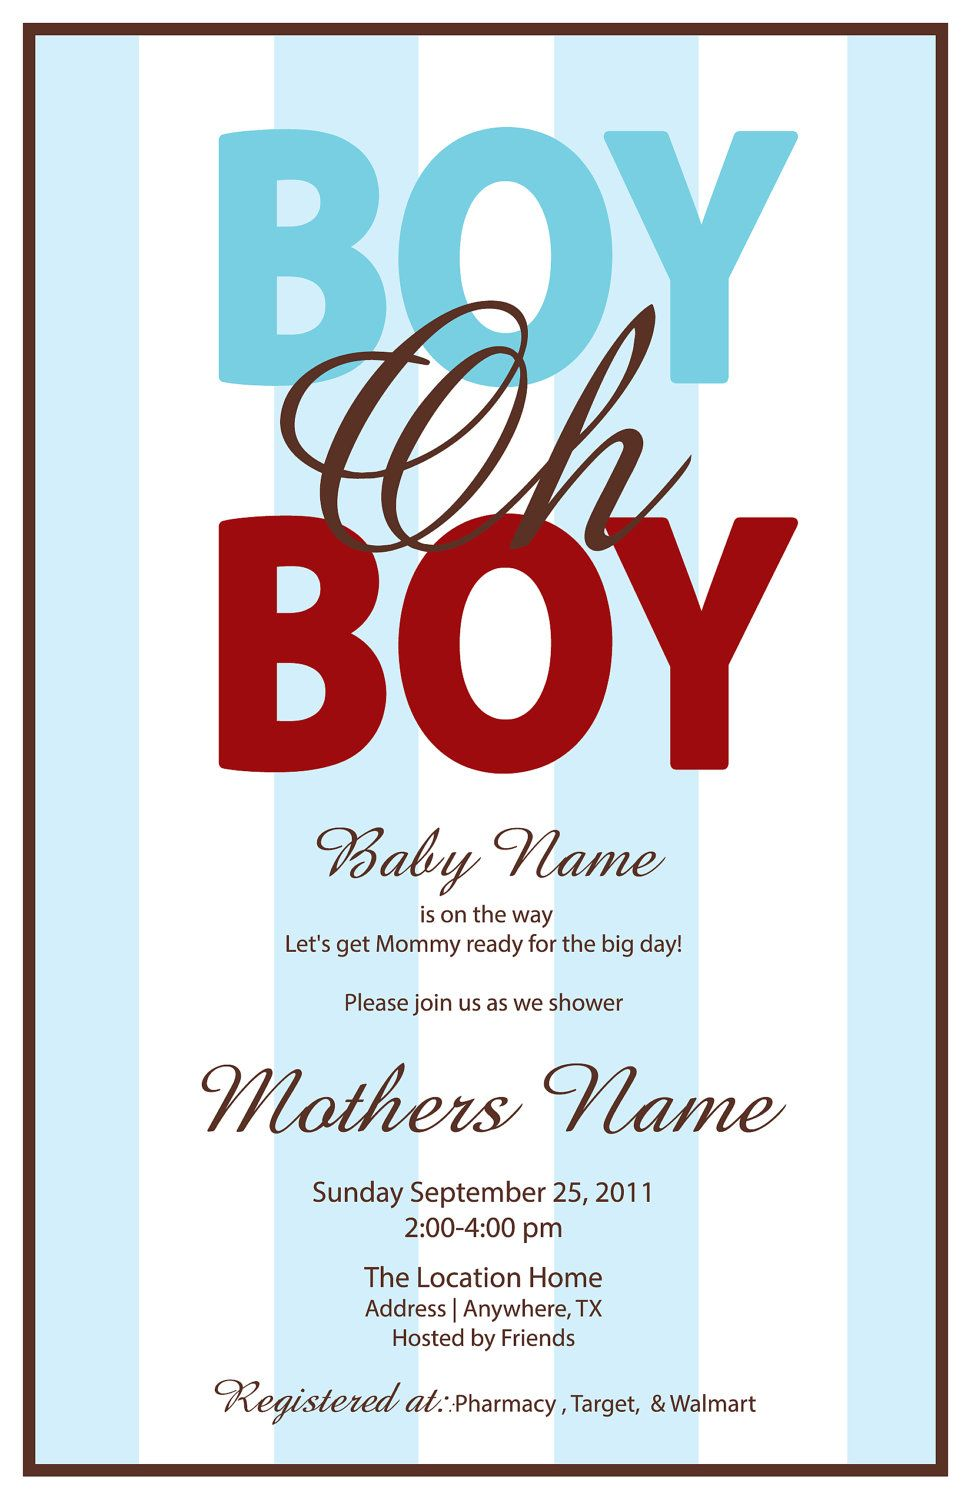 Fancy Oh Boy Baby Shower Invitations Gallery - Invitations and ...